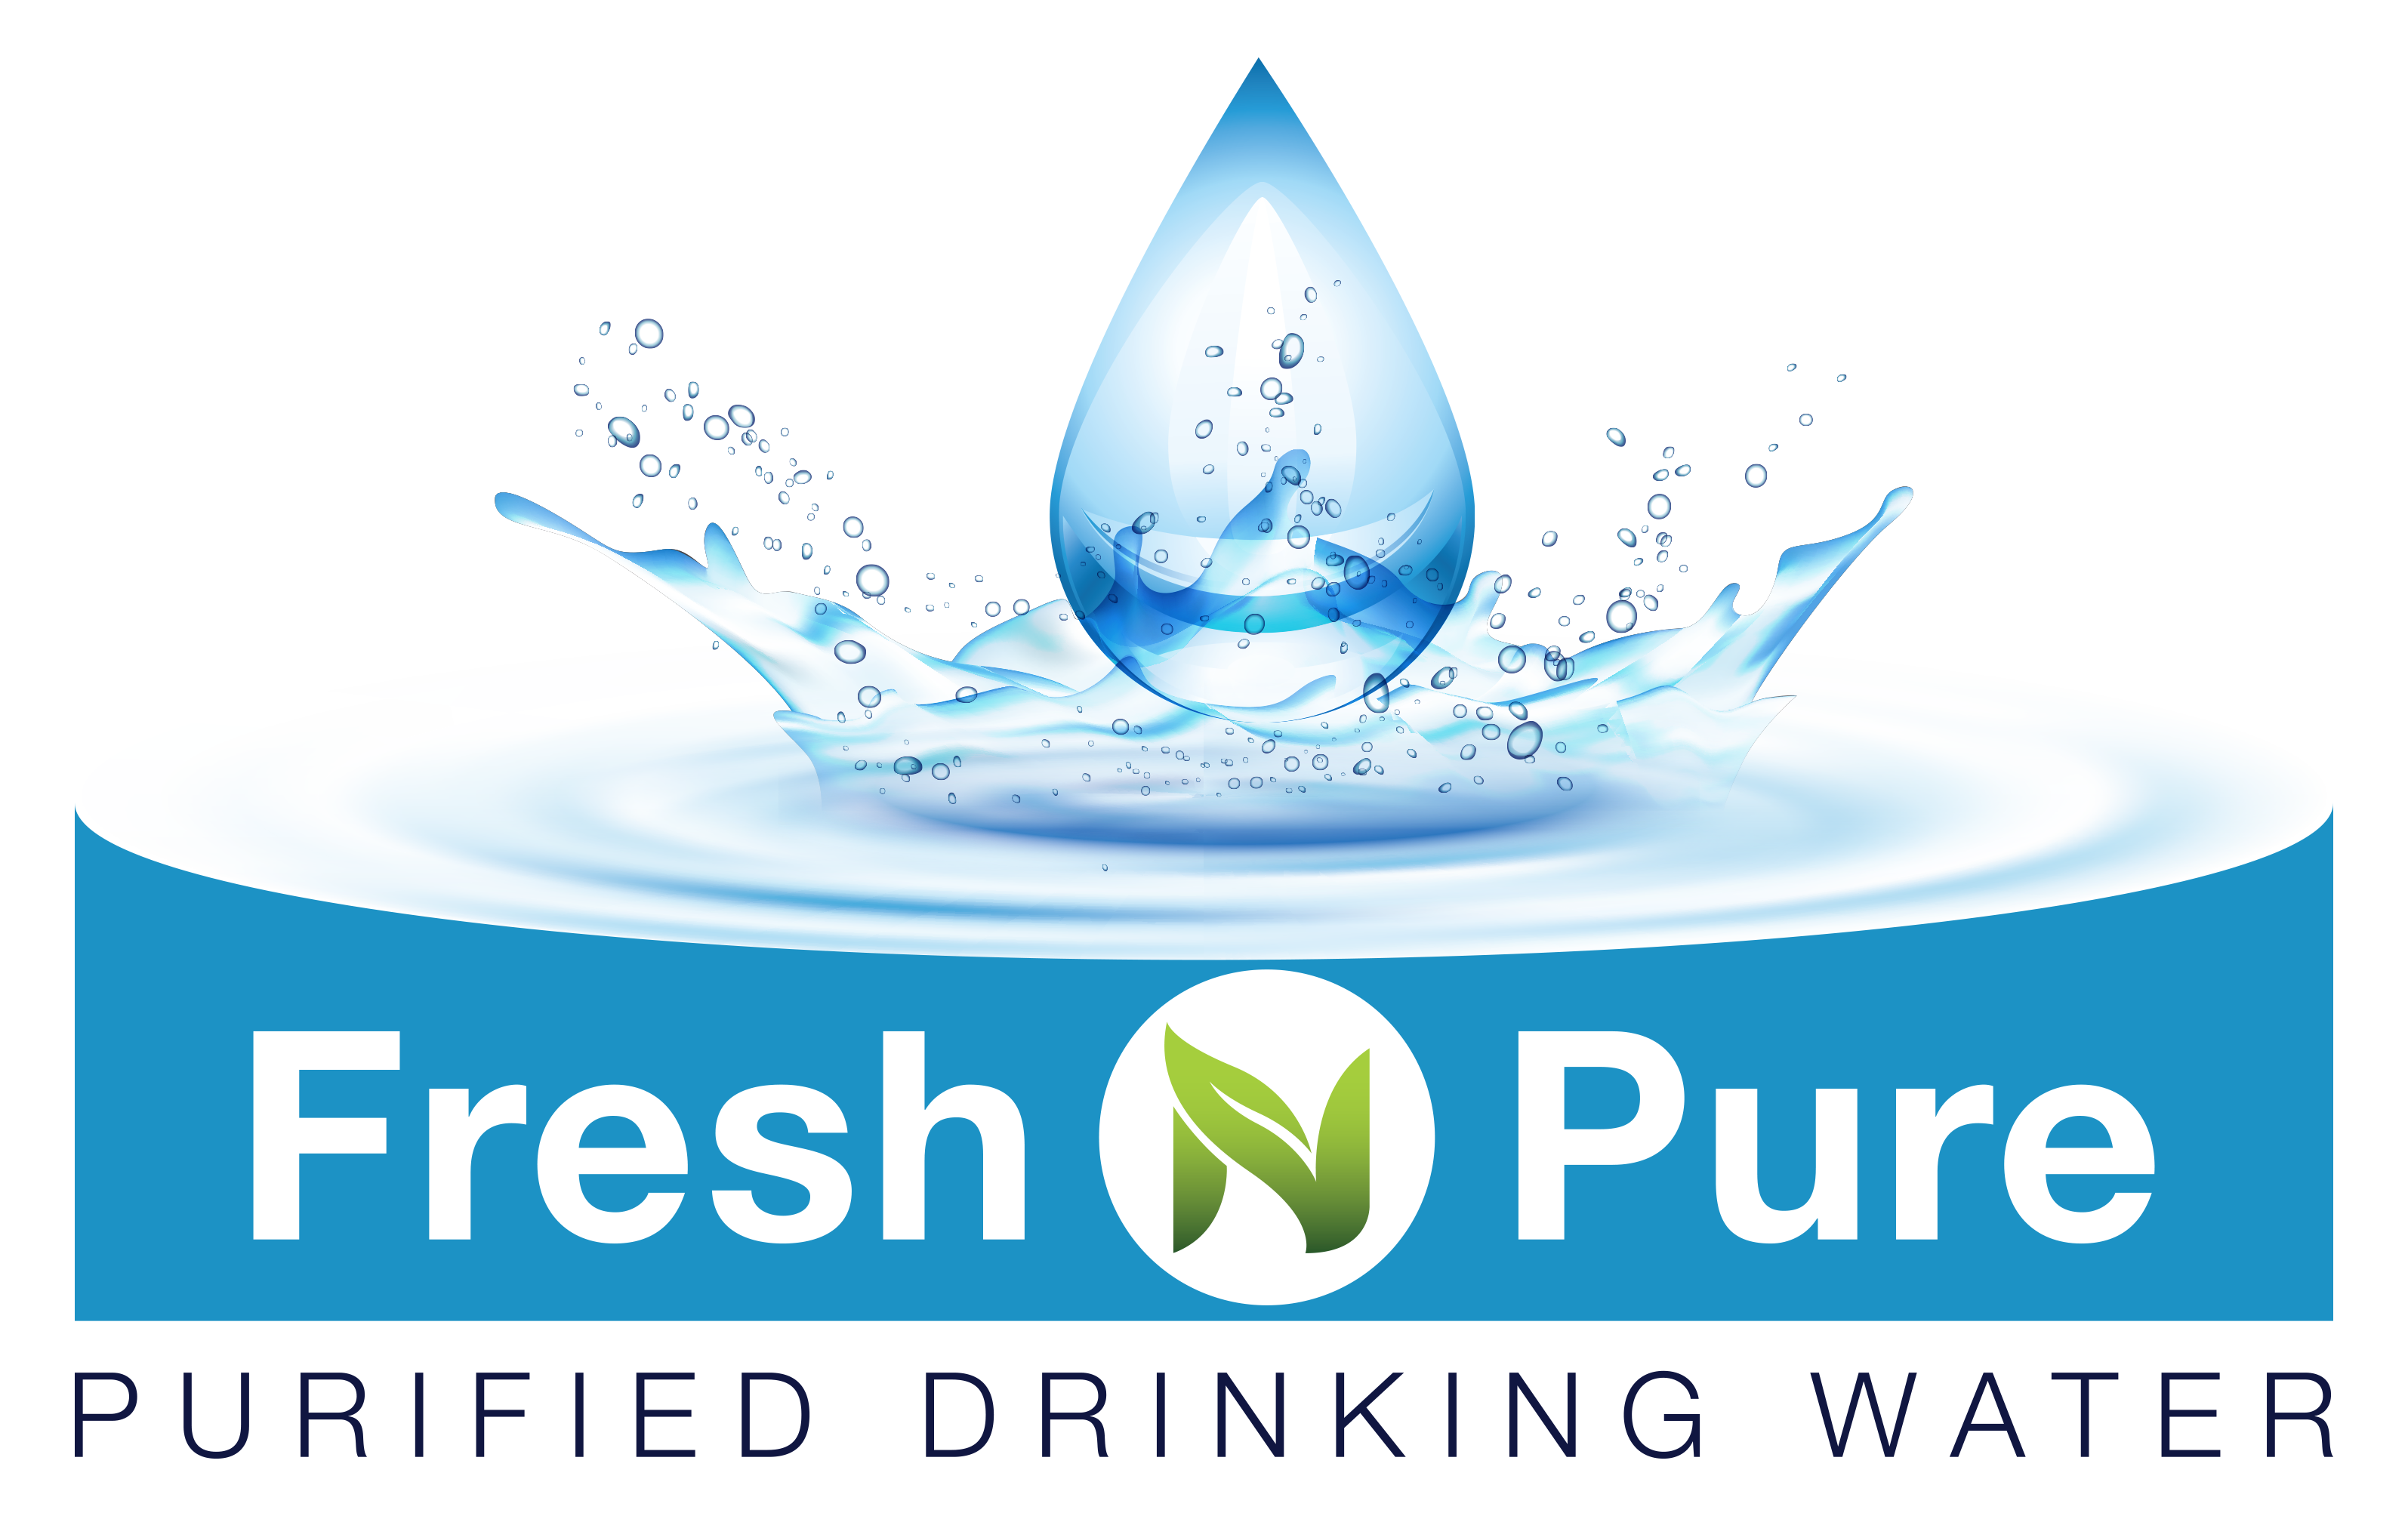 Fresh n pure water UK